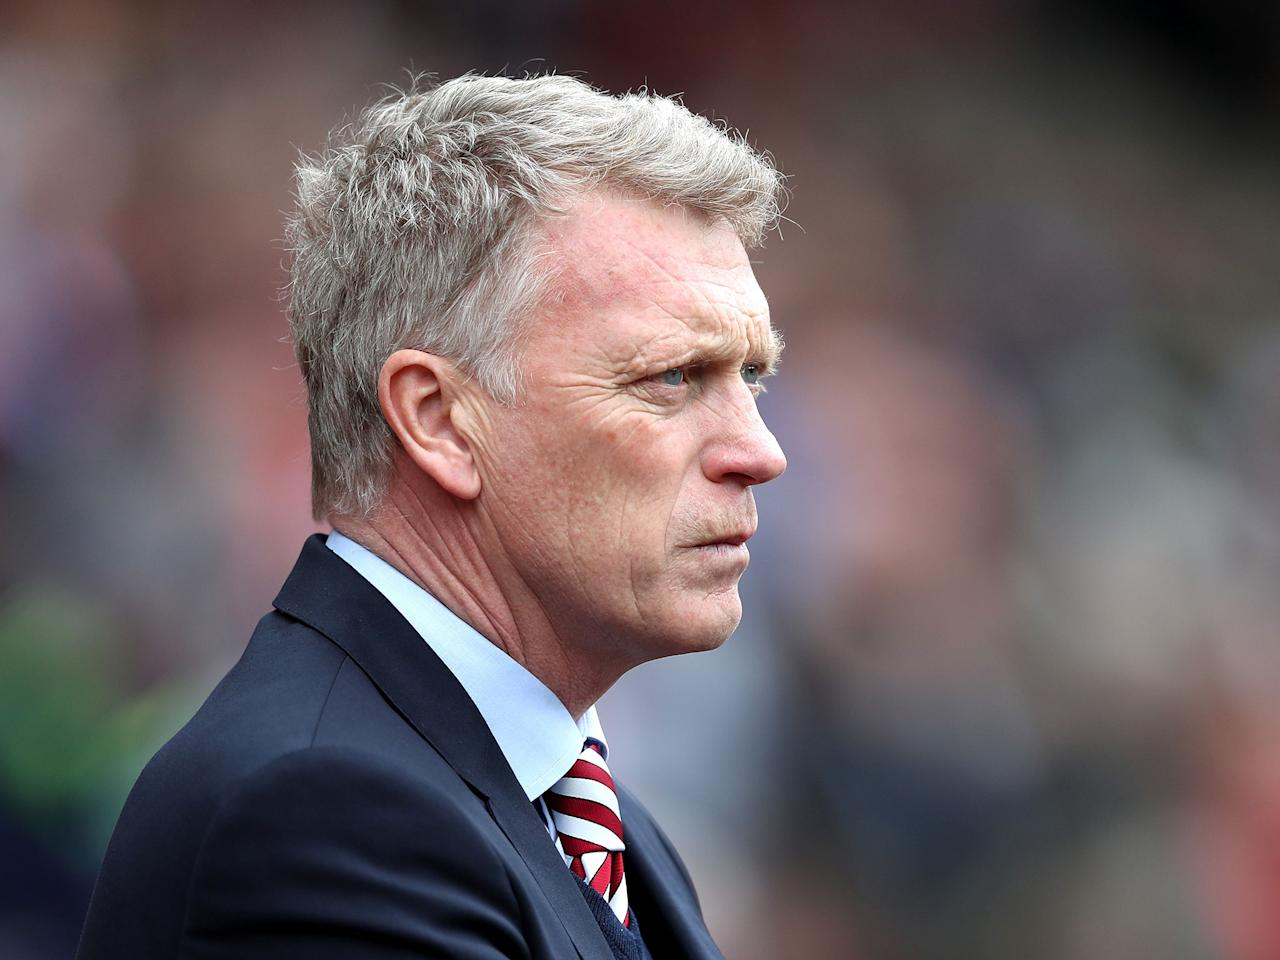 David Moyes resigns as Sunderland boss following Premier League relegation